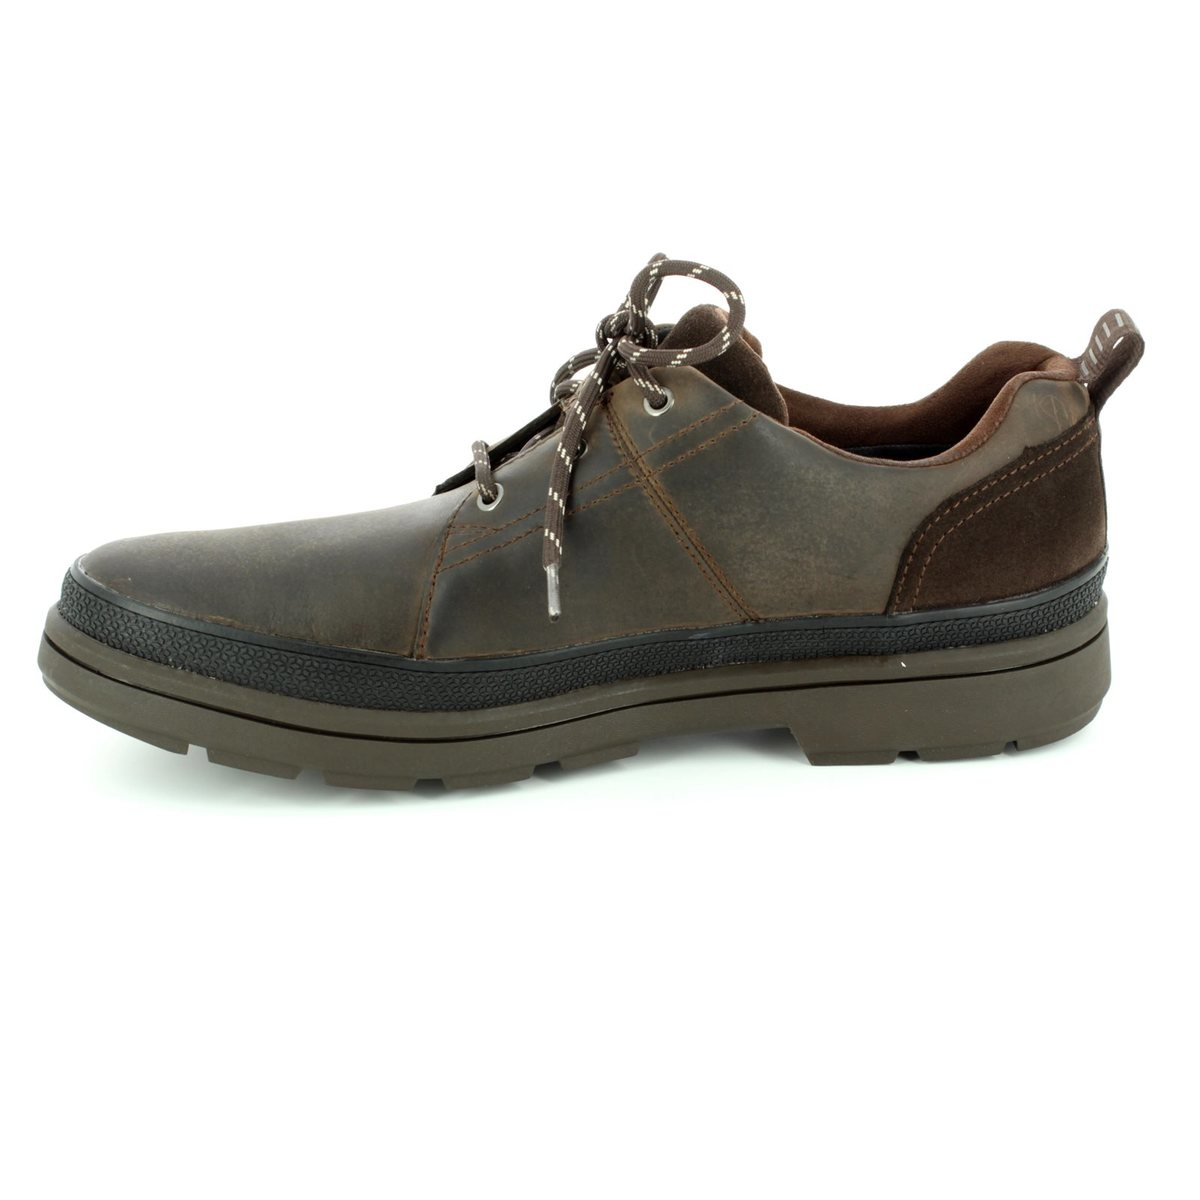 Clarks Casual Shoes - Dark brown - 2834/97G RUSHWAY LACE GORE-TEX